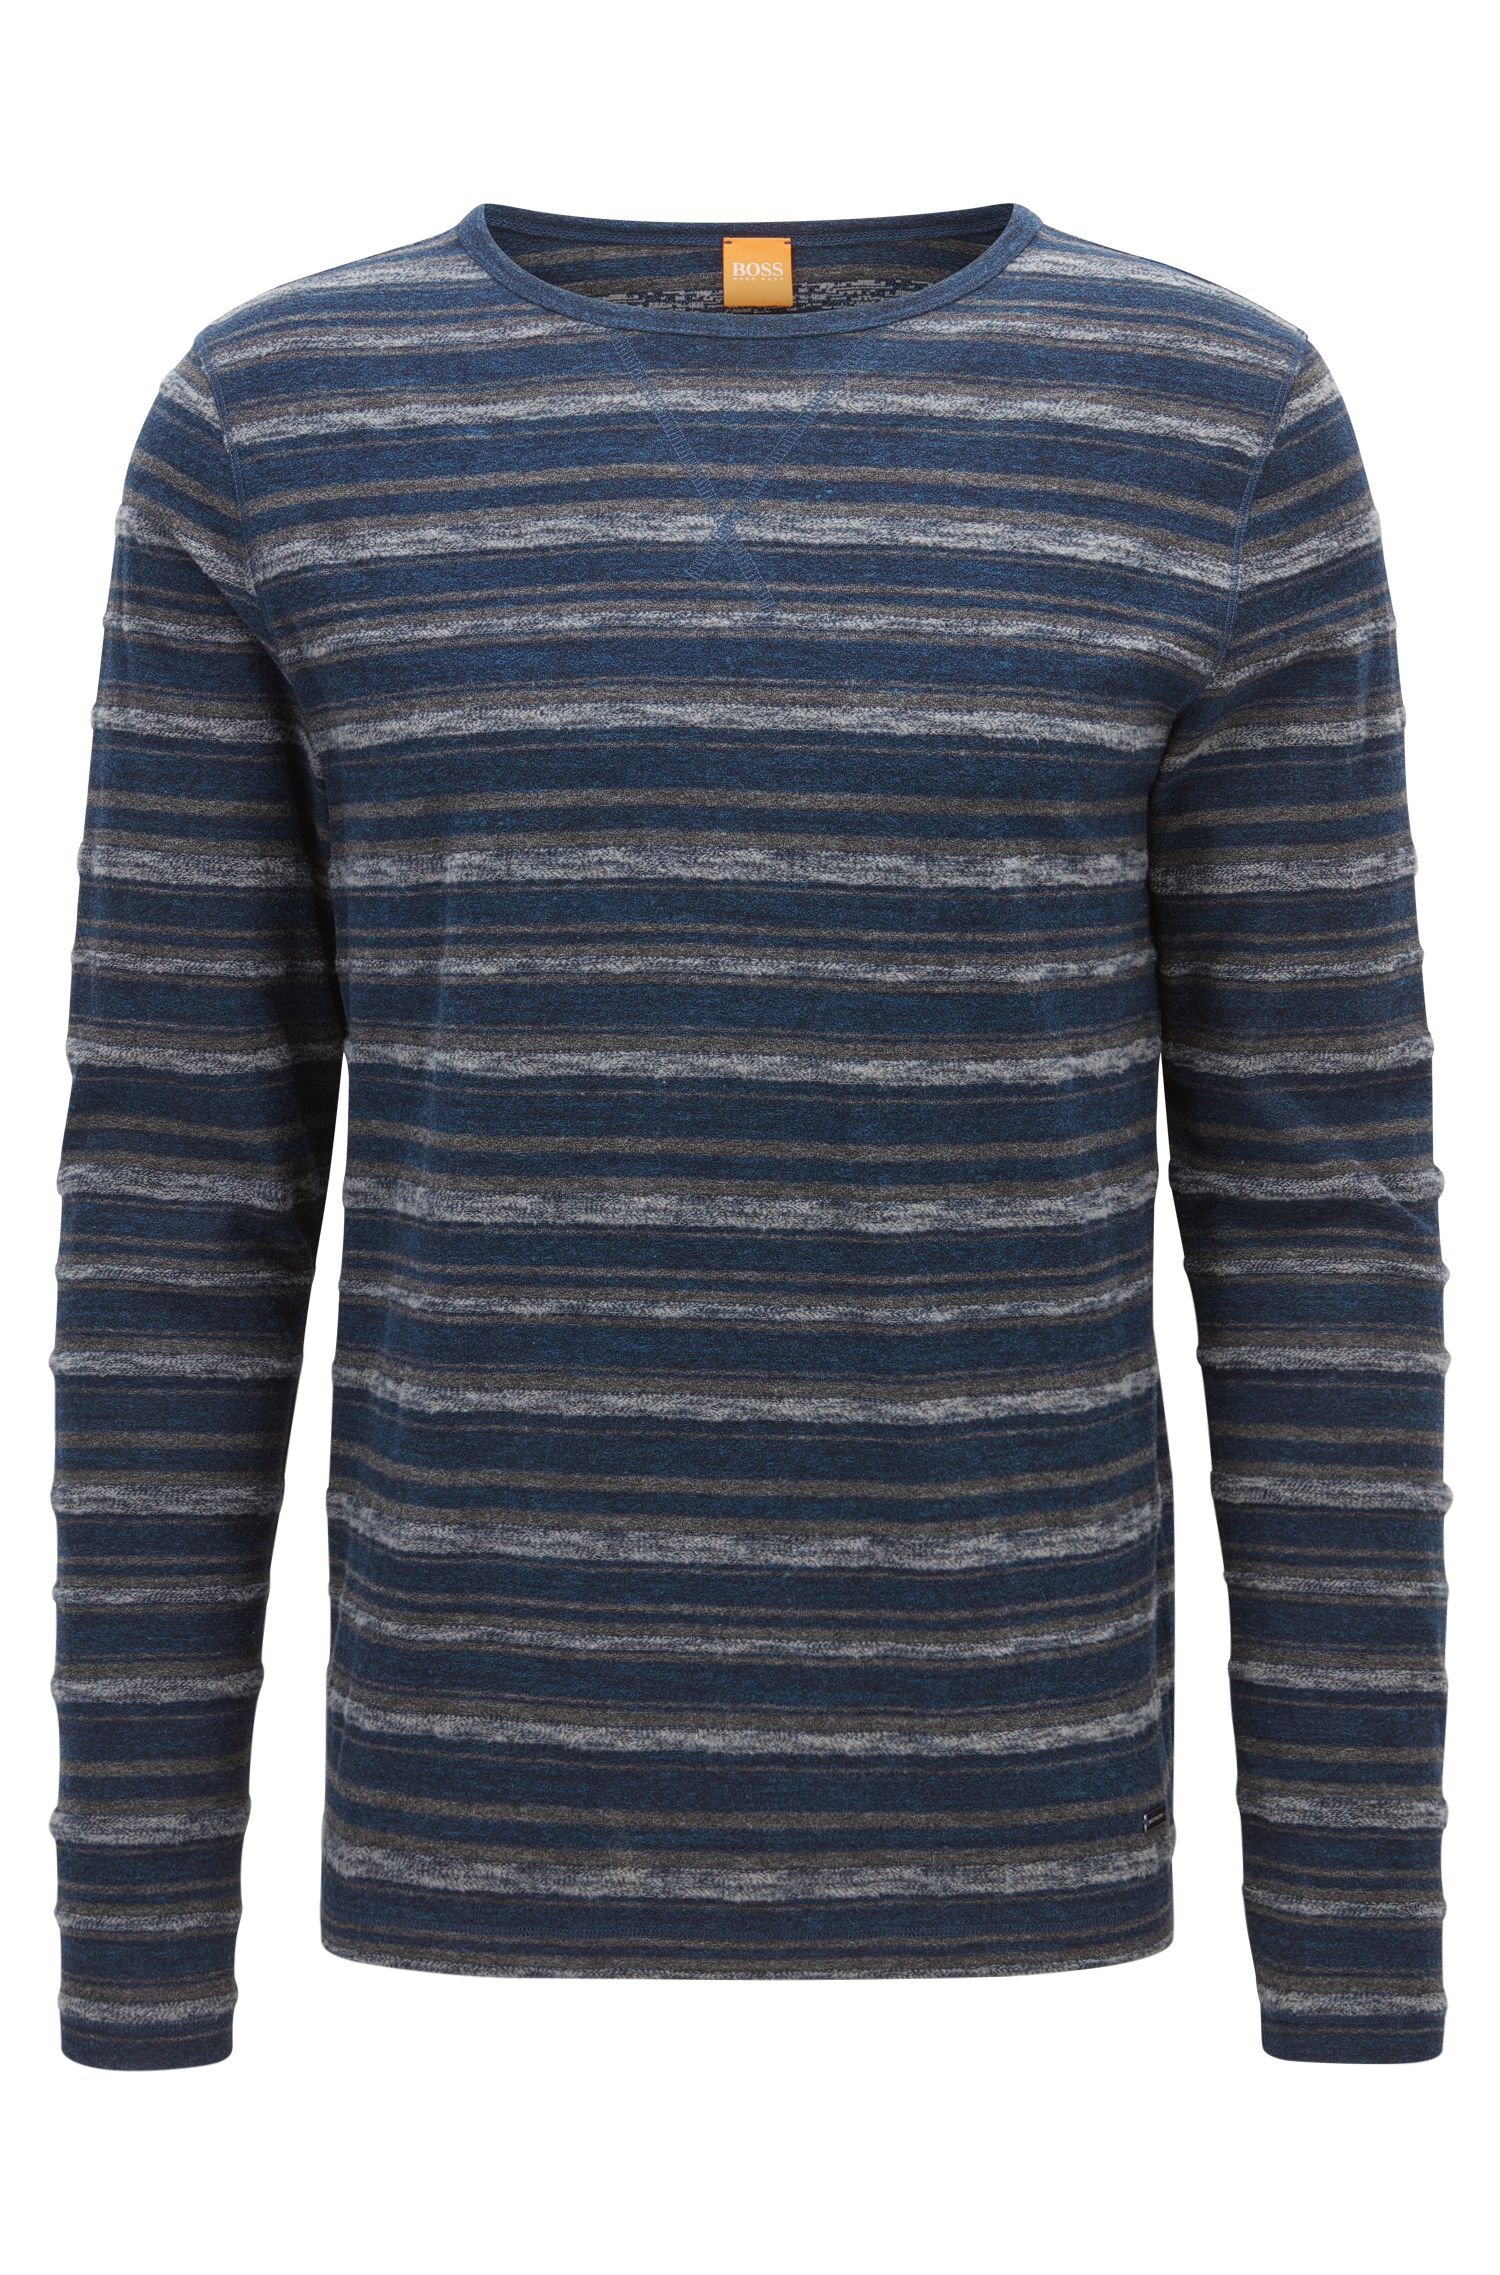 Striped Stretch Cotton T-Shirt   Twinkle